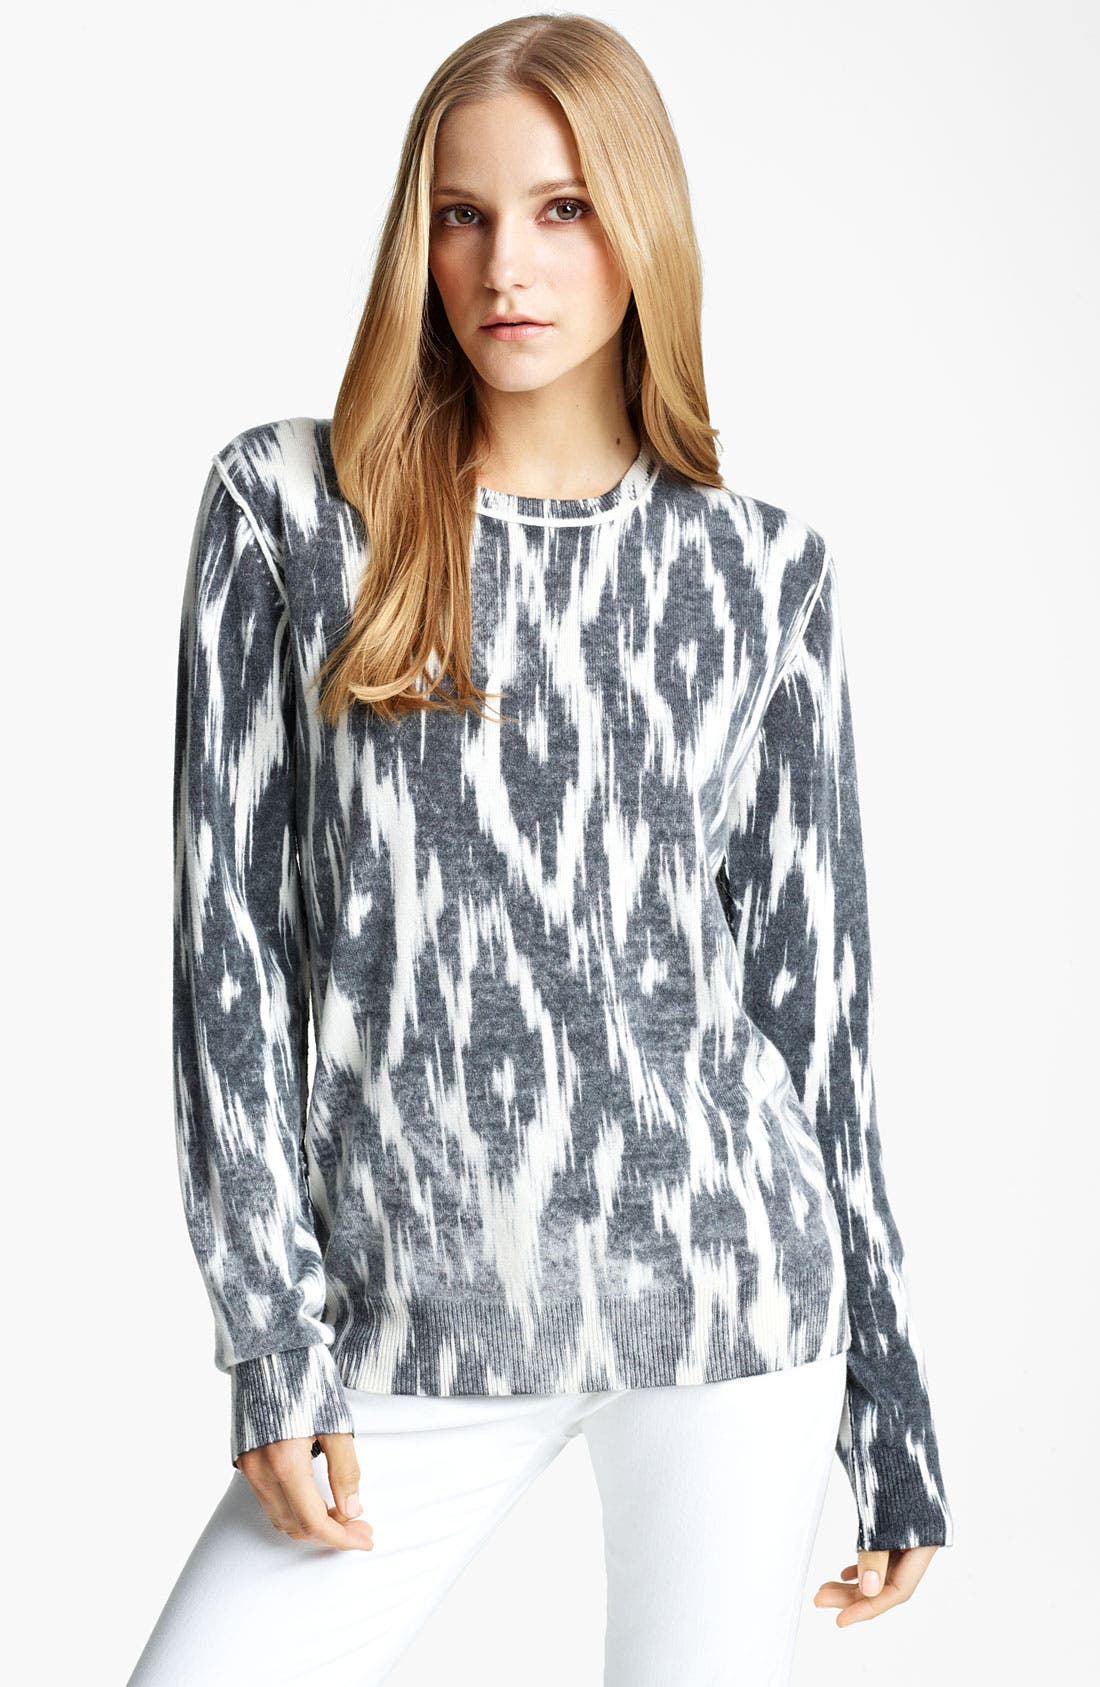 Alternate Image 1 Selected - Michael Kors Ikat Print Cashmere Pullover